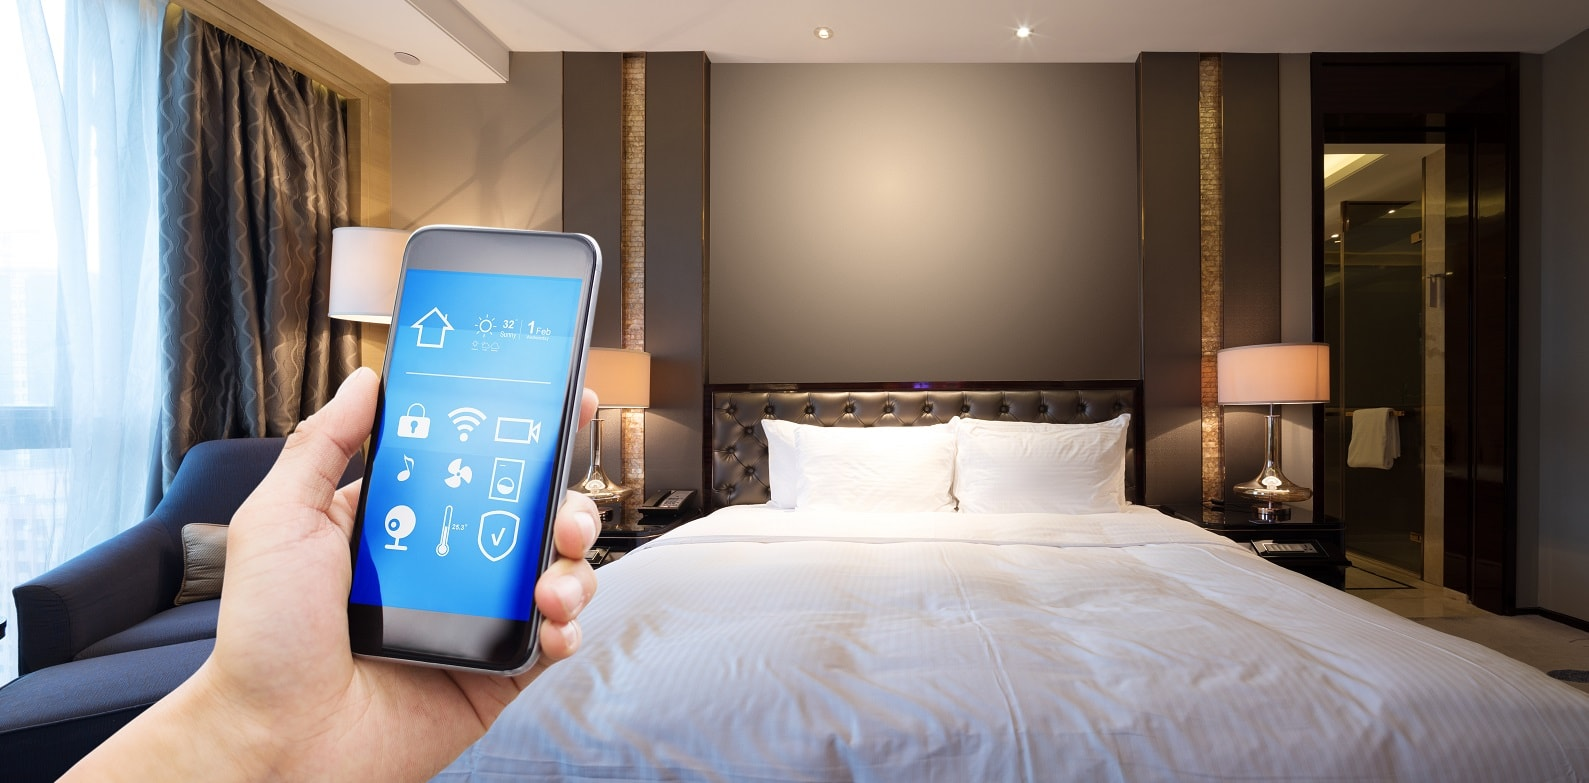 improved-sustainability Five Reasons Your Hotel or B&B Should Invest in Smart Technology This Year